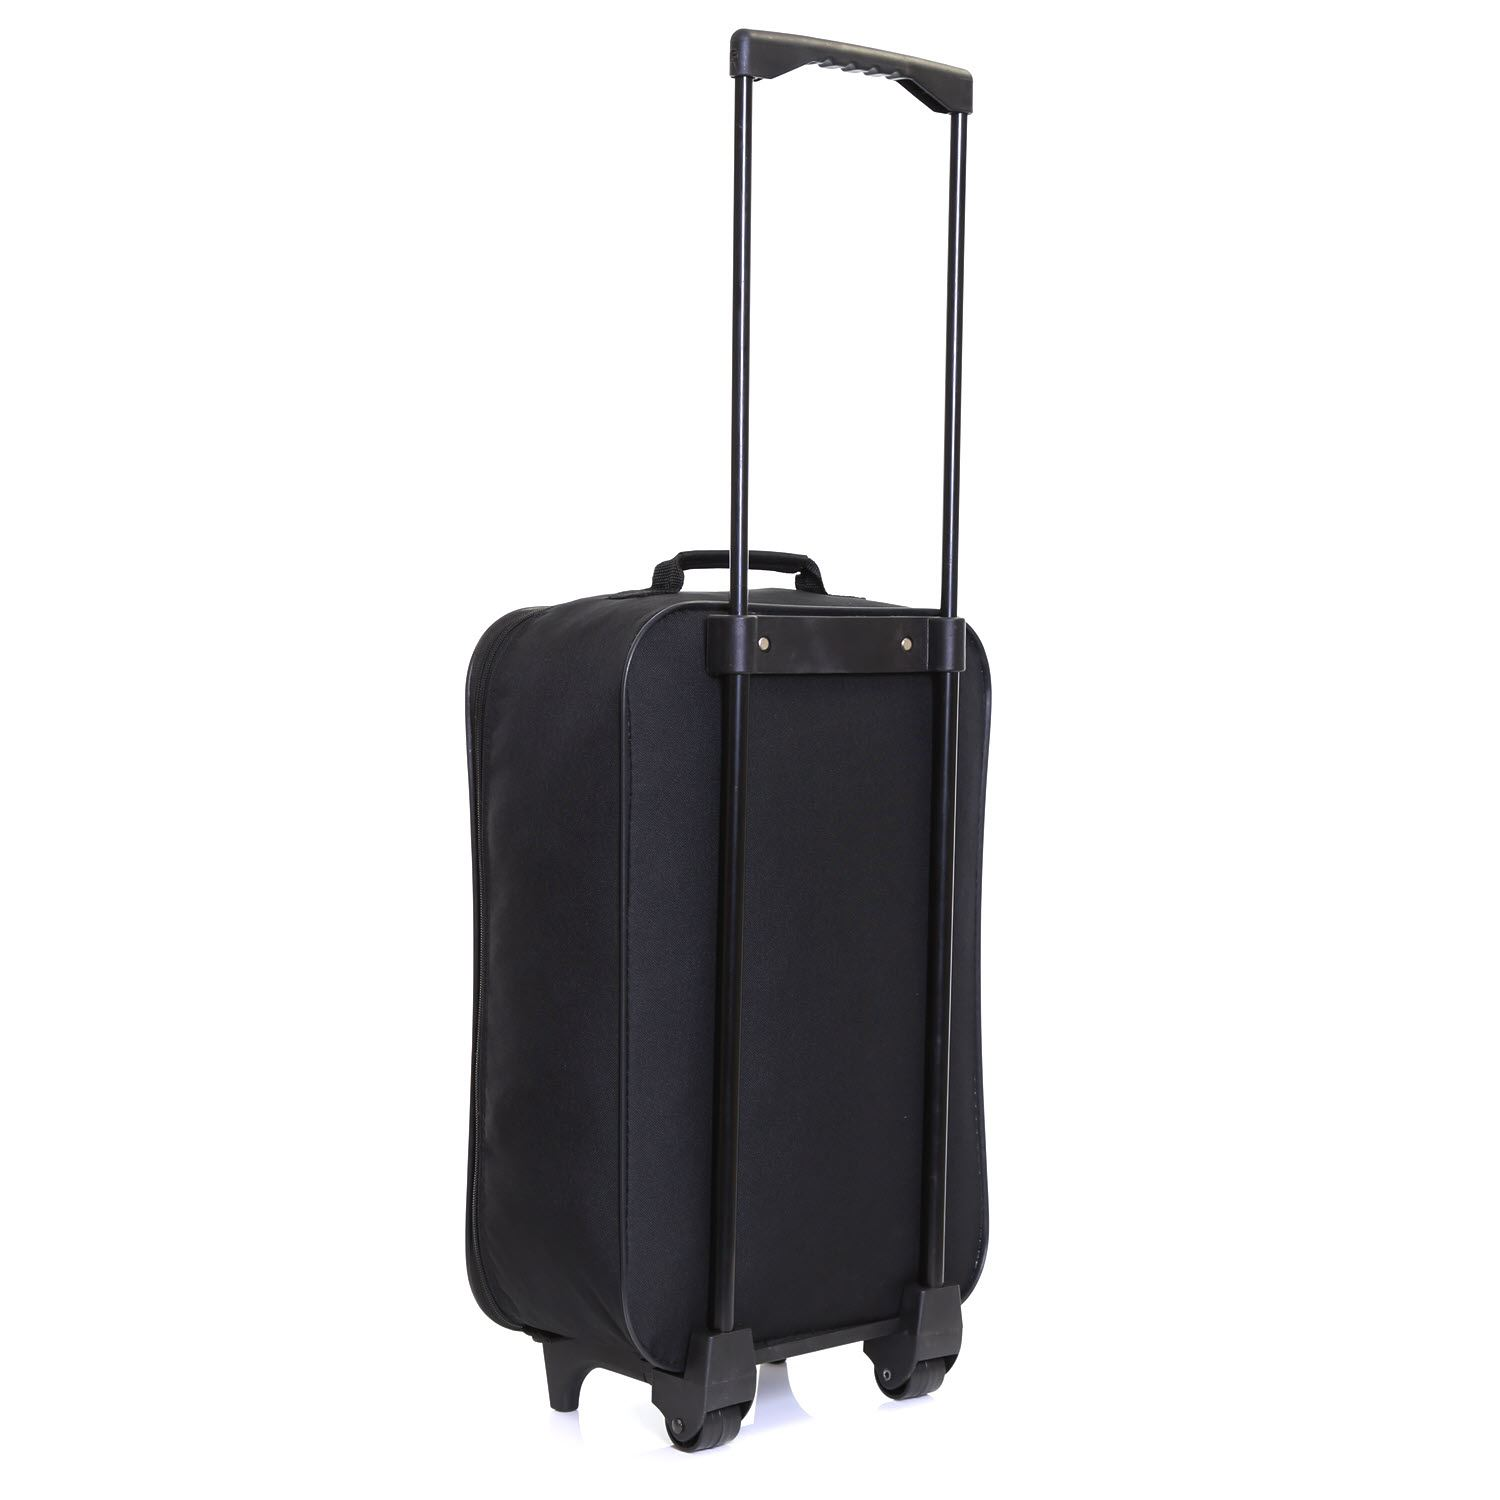 Easyjet flybe ryanair cabin carry on hand luggage trolley for Cabin bag size